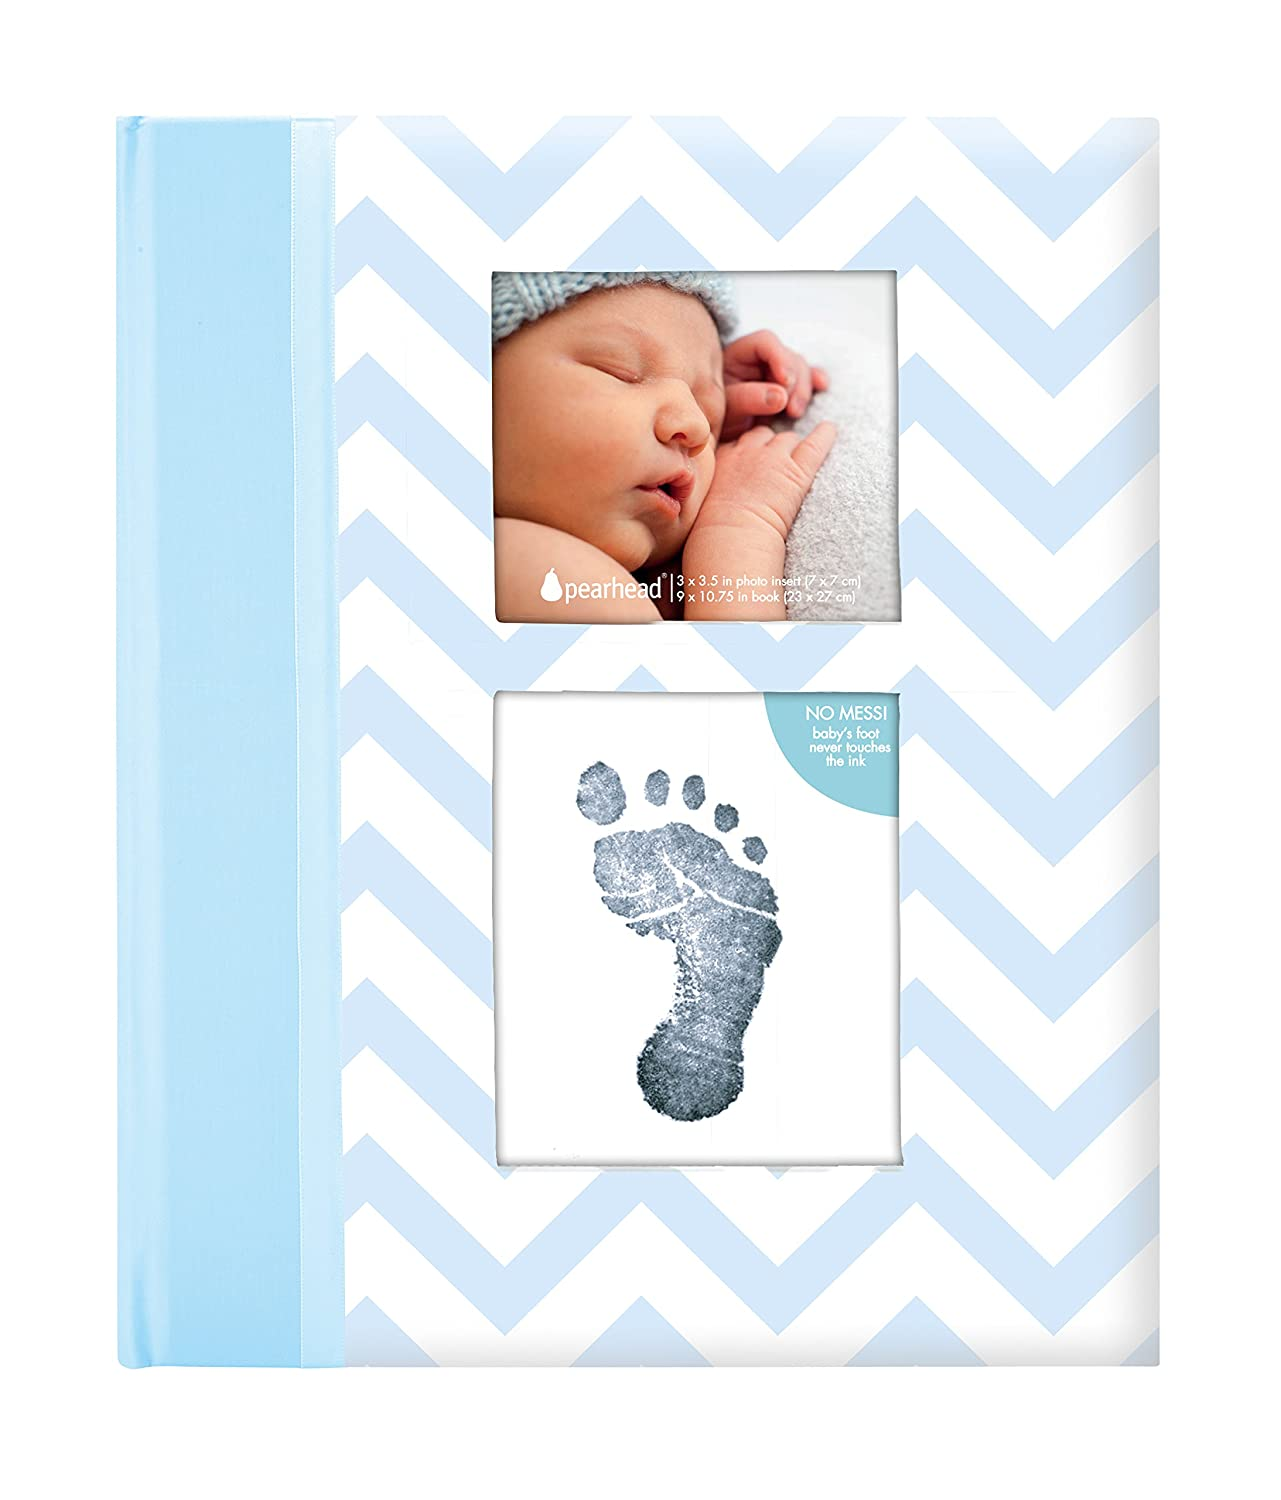 Pearhead First 5 Years Chevron Baby Memory Book with Included Clean-Touch Baby Safe Ink Pad to Create Baby s Handprint or Footprint, Keepsake Milestone Journal, Beautiful Gift for Any New Mum, Blue